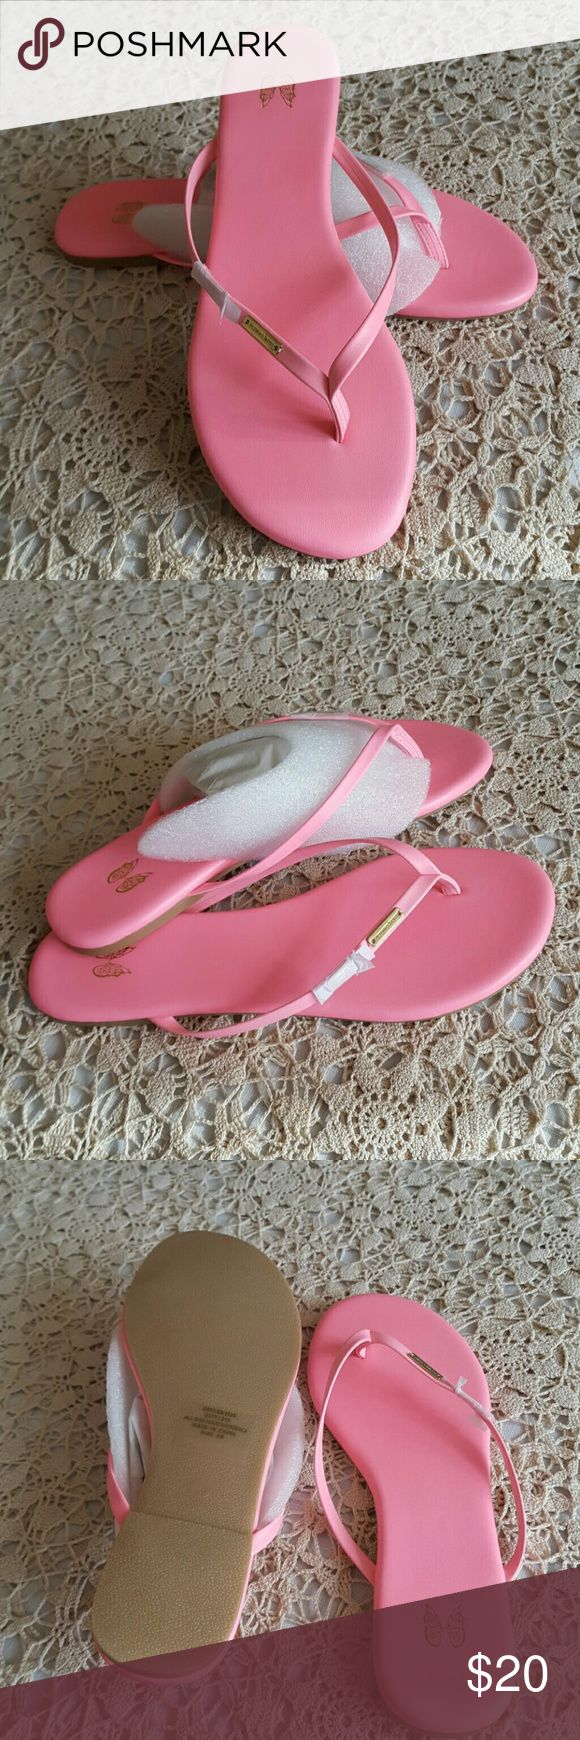 Sandals vs shoes - Nwt Victoria S Secret Angel Sandals These Super Cute Angel Sandals Are Still Wrapped In The Box